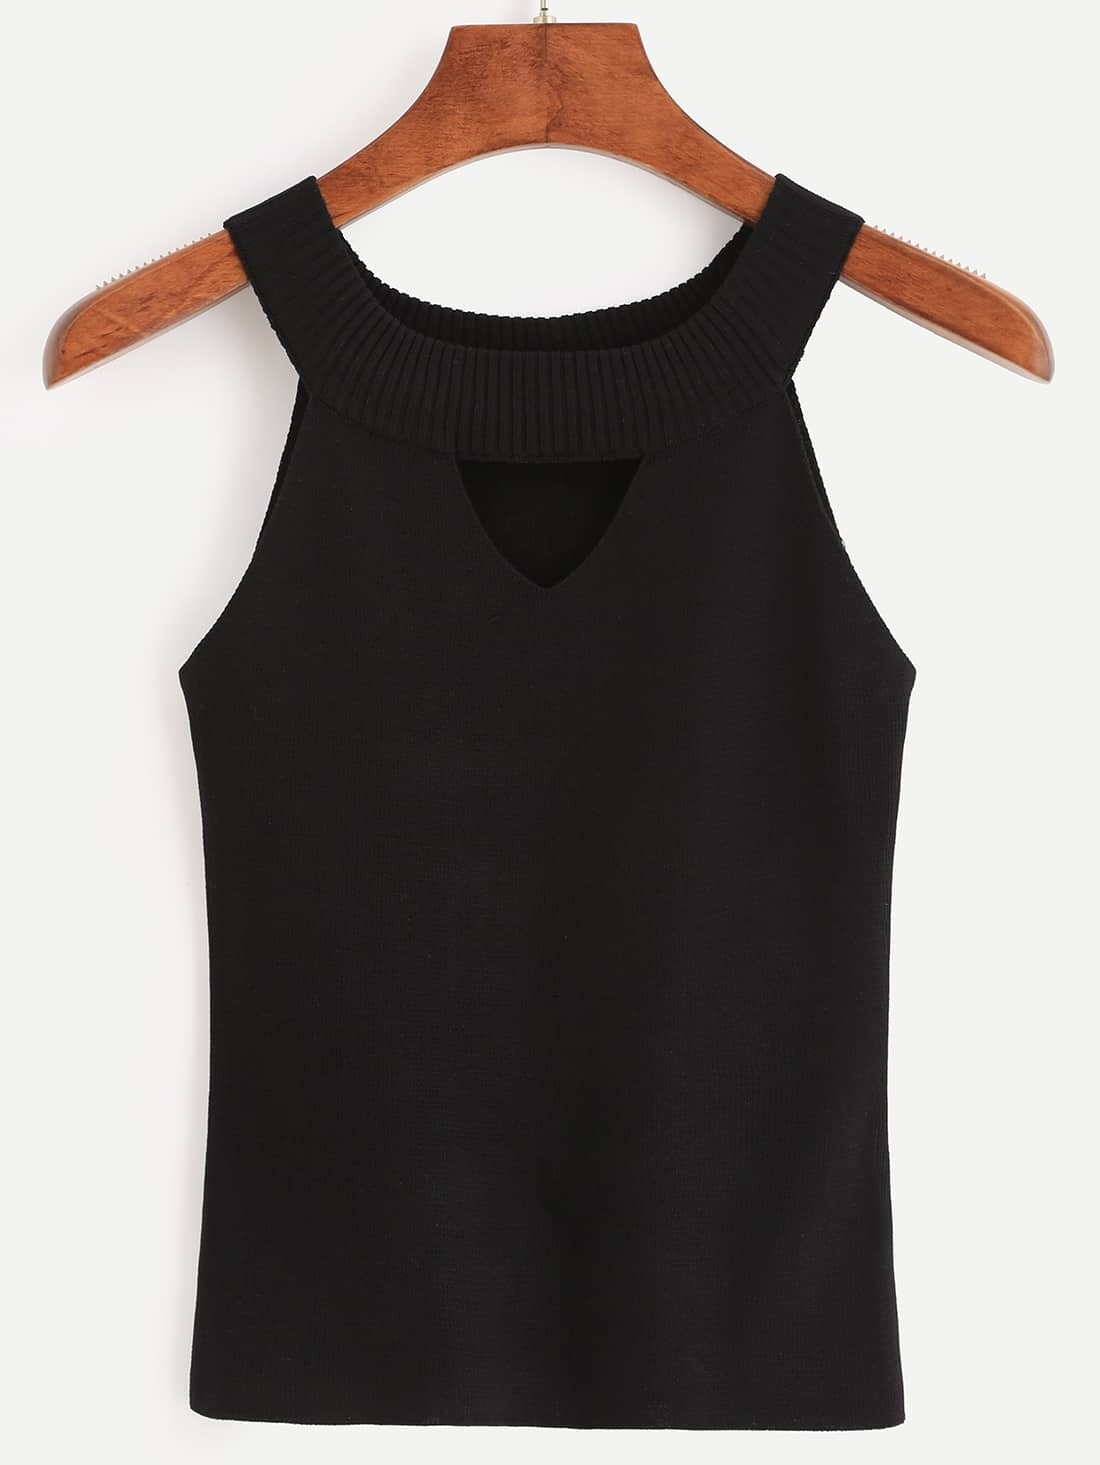 Black Ribbed Neck Cutout Knitted Top vest160615032